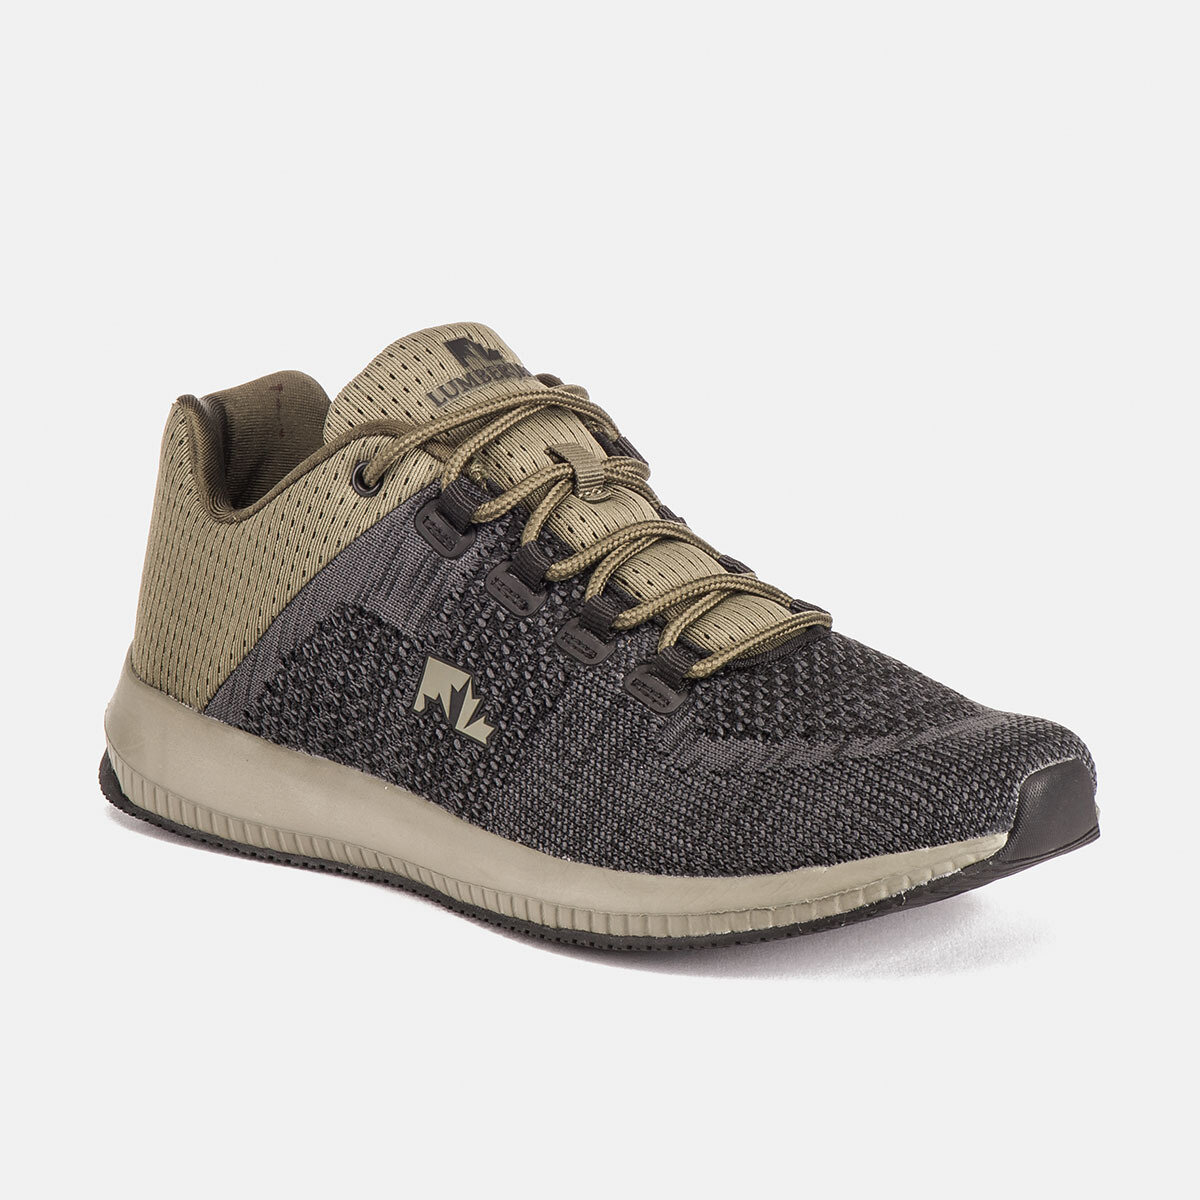 ALLE GREY/MILITARY GREEN Man Running shoes